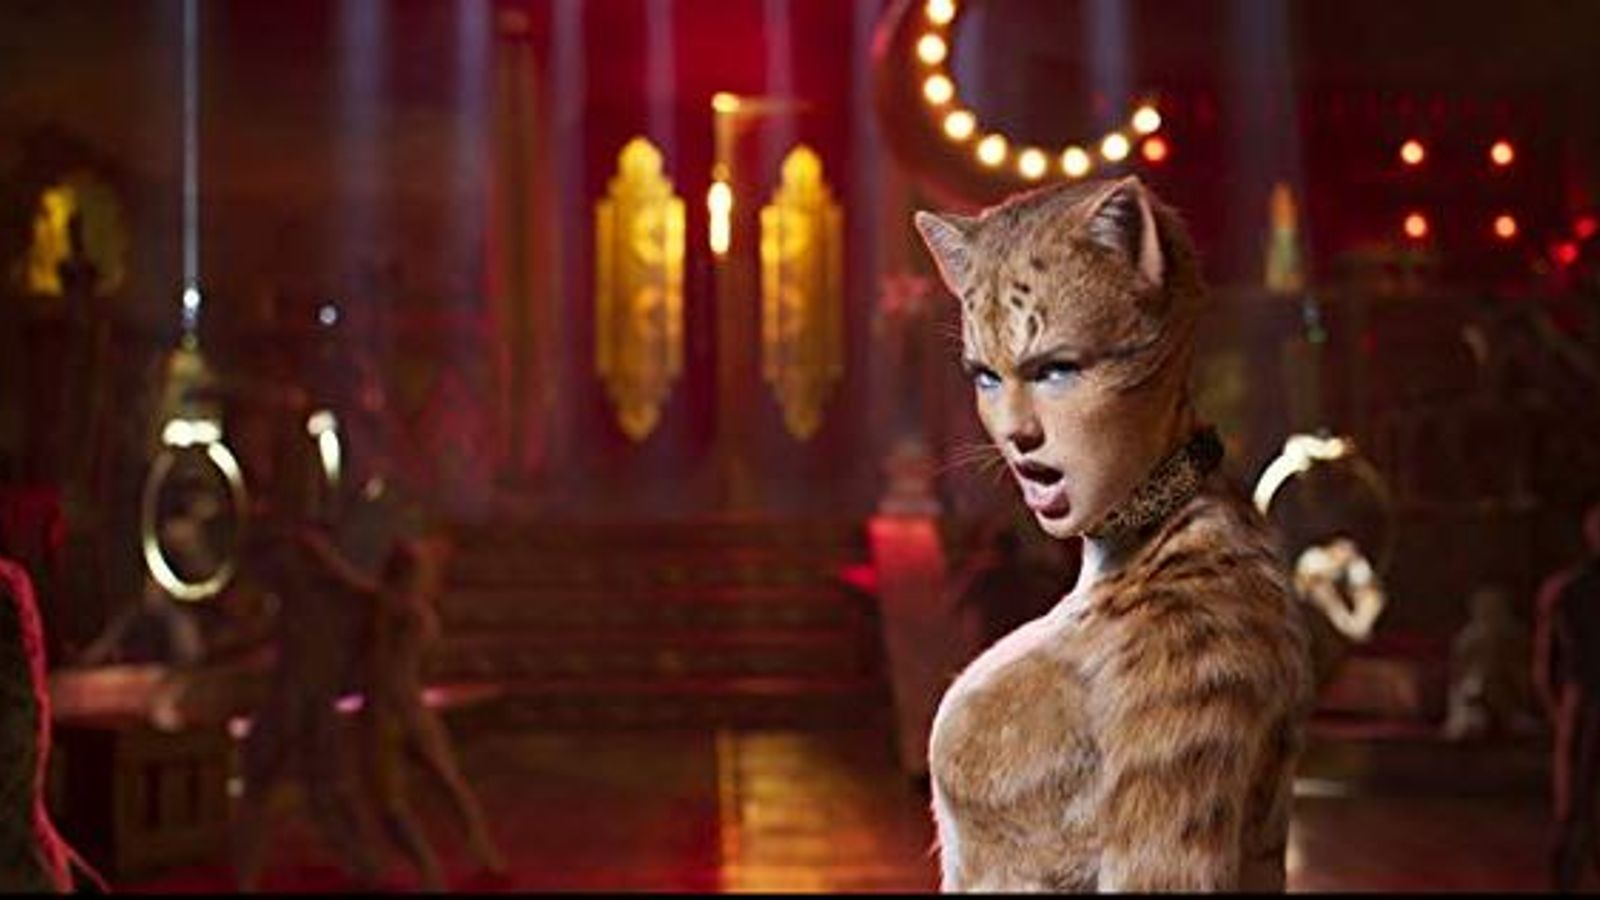 Cats trailer leaves viewers 'terrified' by creepy felines